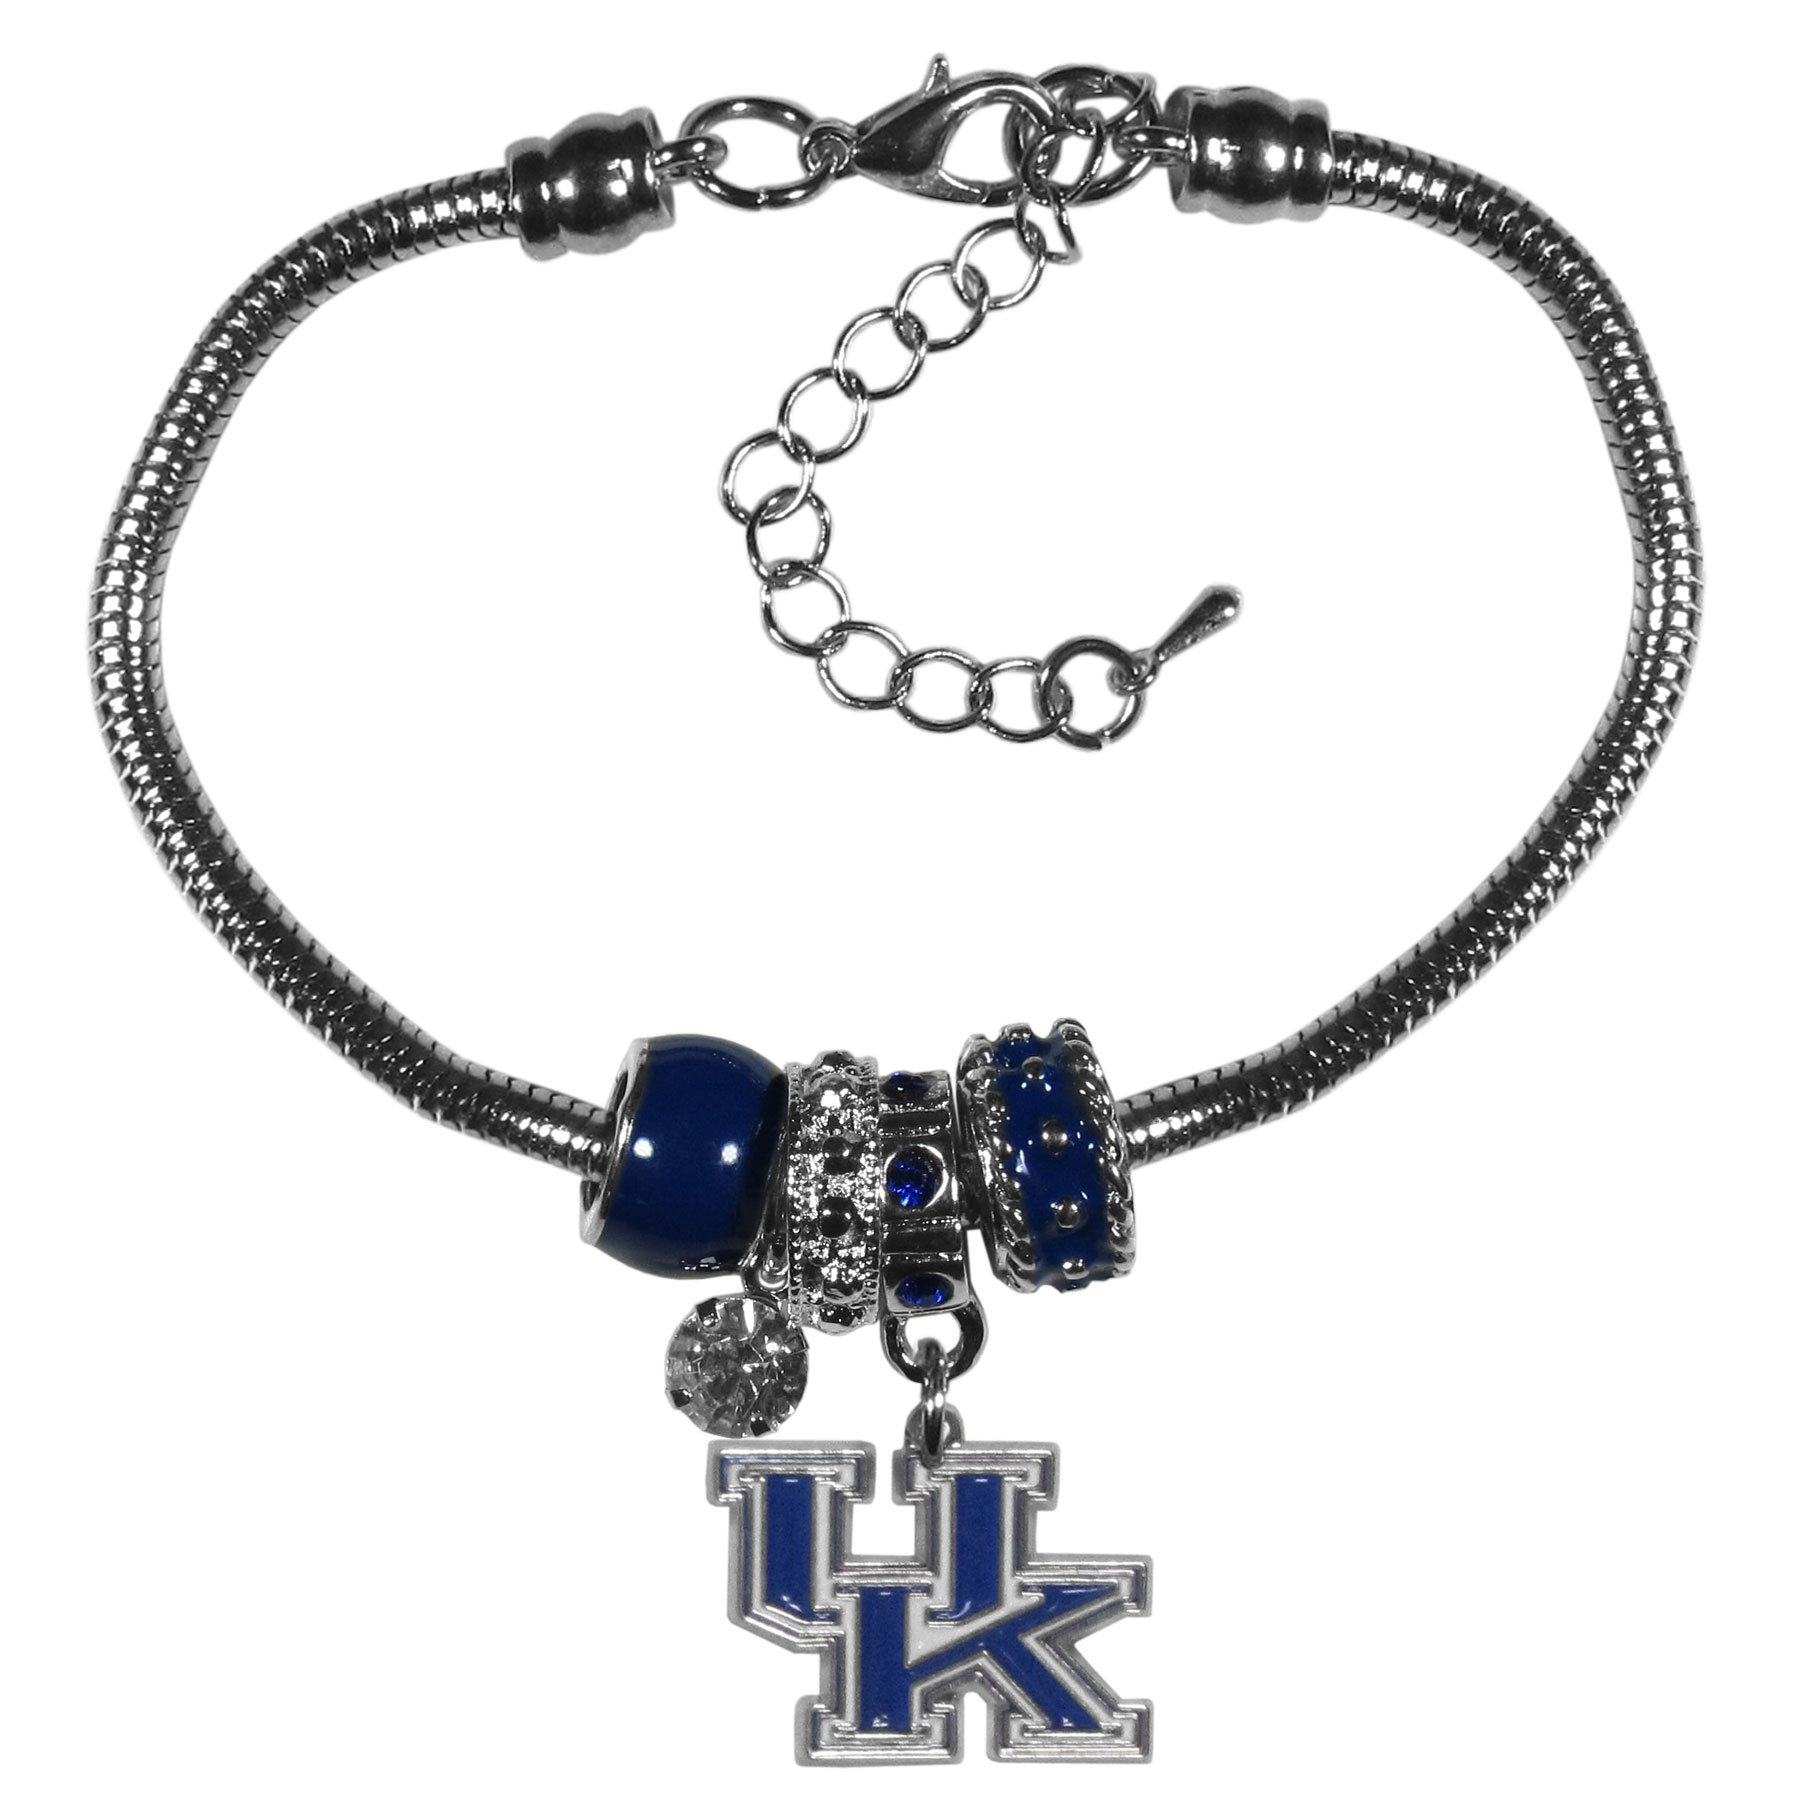 Kentucky Wildcats Euro Bead Bracelet - We have combined the wildly popular Euro style beads with your favorite team to create our  Kentucky Wildcats bead bracelet. The 7.5 inch snake chain with 2 inch extender features 4 Euro beads with enameled team colors and rhinestone accents with a high polish, nickel free charm and rhinestone charm. Perfect way to show off your team pride.